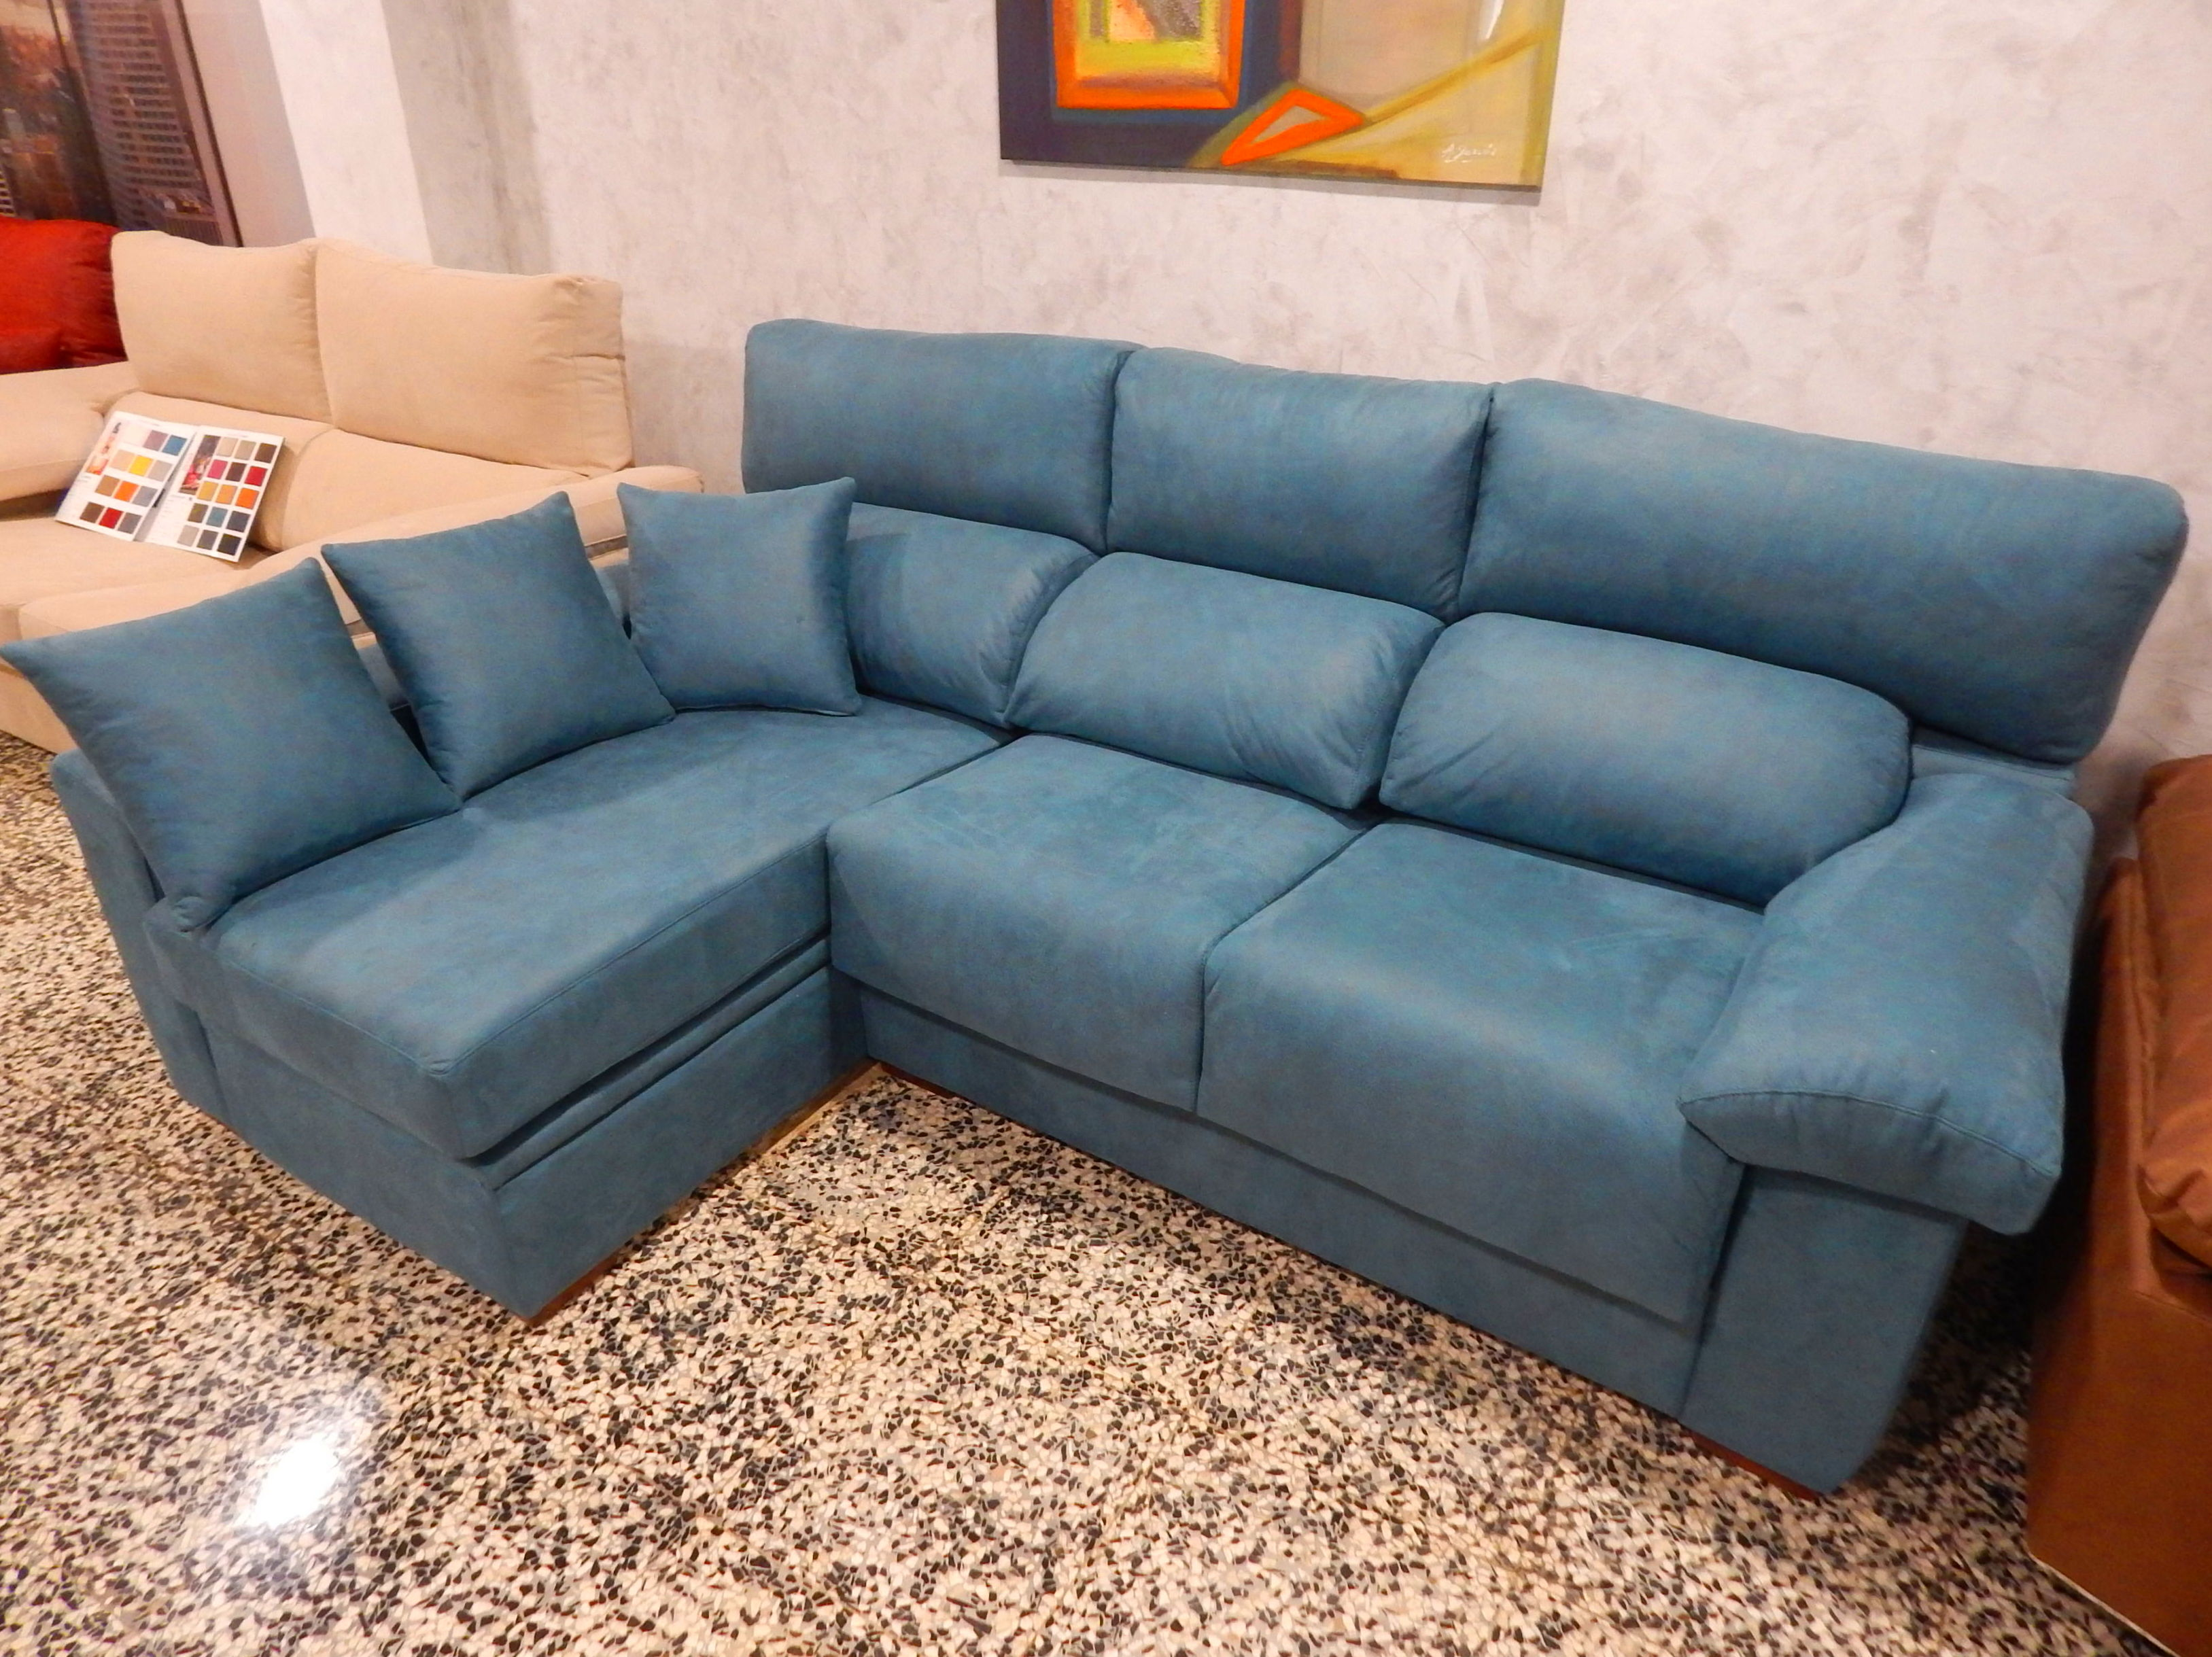 Muebles Boom Fuenlabrada Sofas Anticrisis Latest Puff Polipiel With Sofas